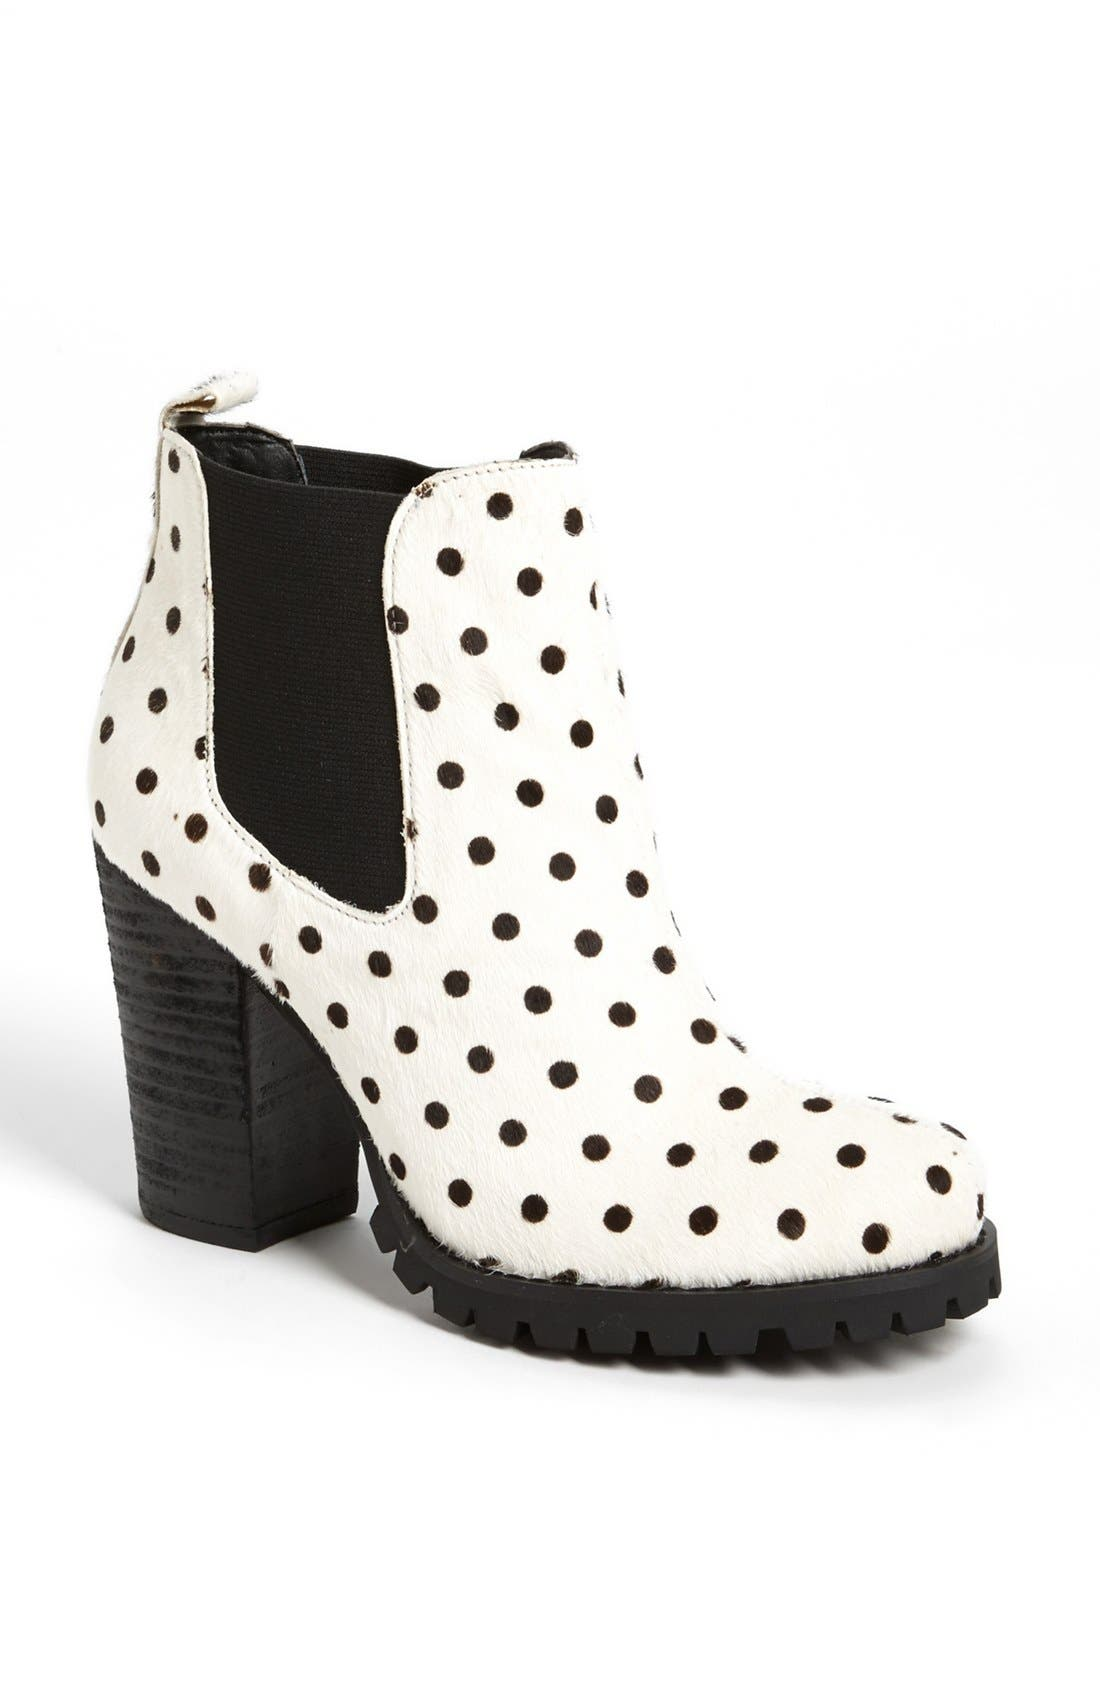 Main Image - Chinese Laundry 'Brash' Boot (Limited Edition)